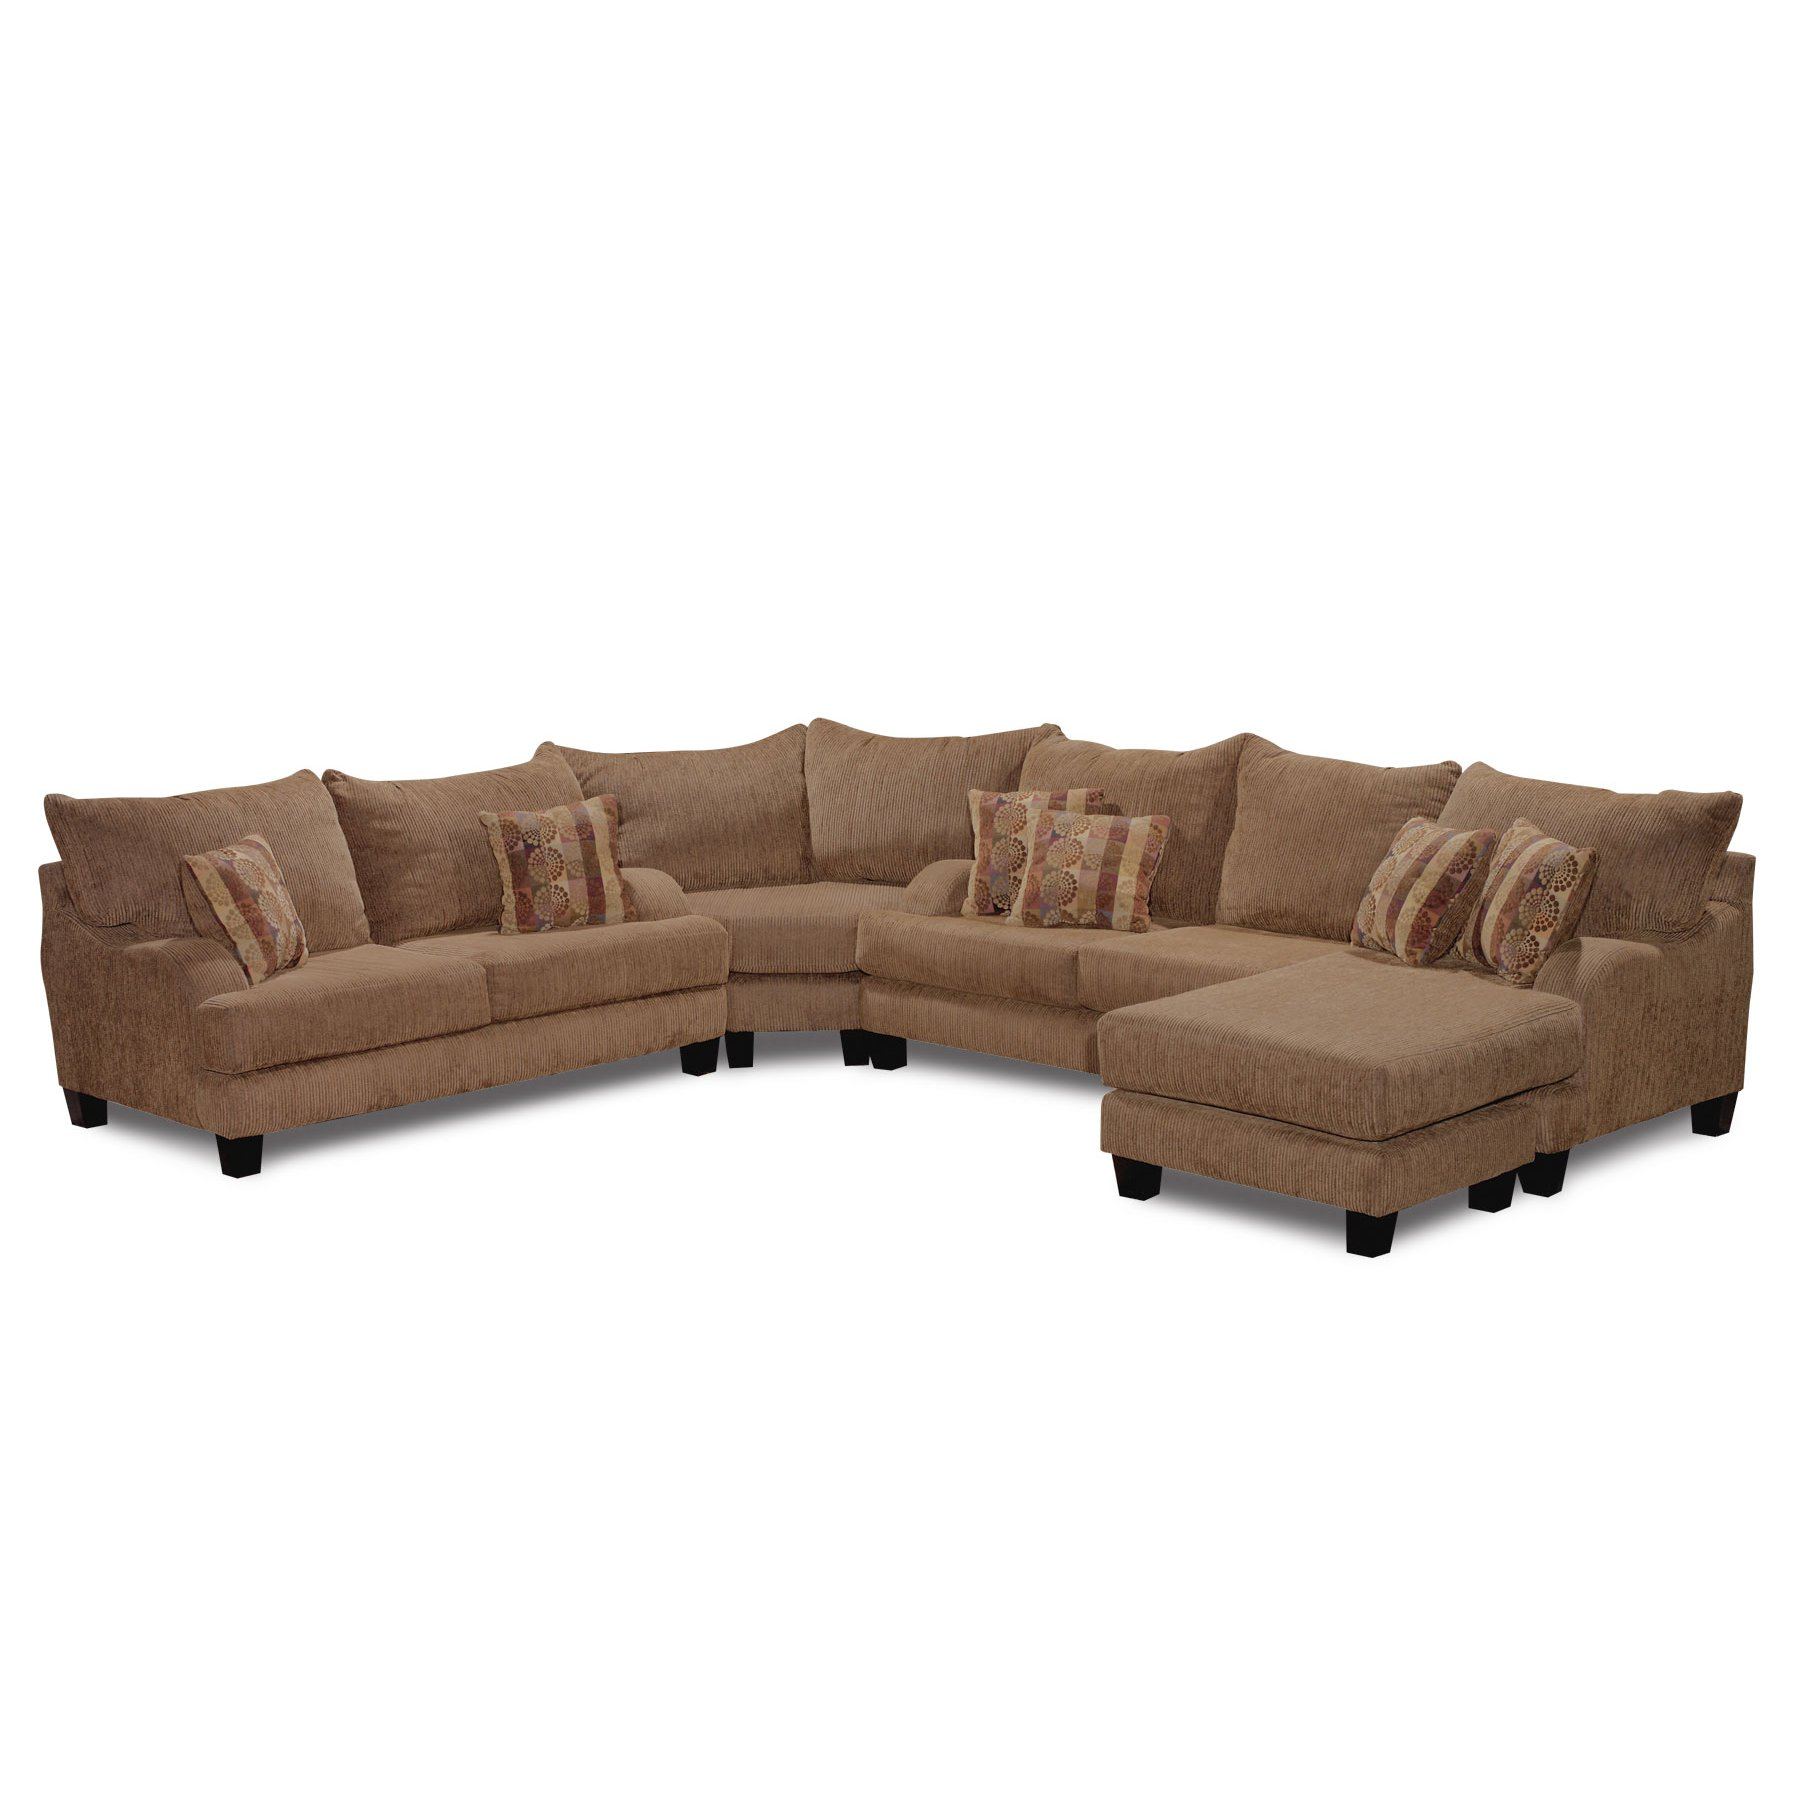 ... Casual Classic Brown 3-Piece Sectional - Laguna ...  sc 1 st  RC Willey : 3 piece sectional sofa sale - Sectionals, Sofas & Couches